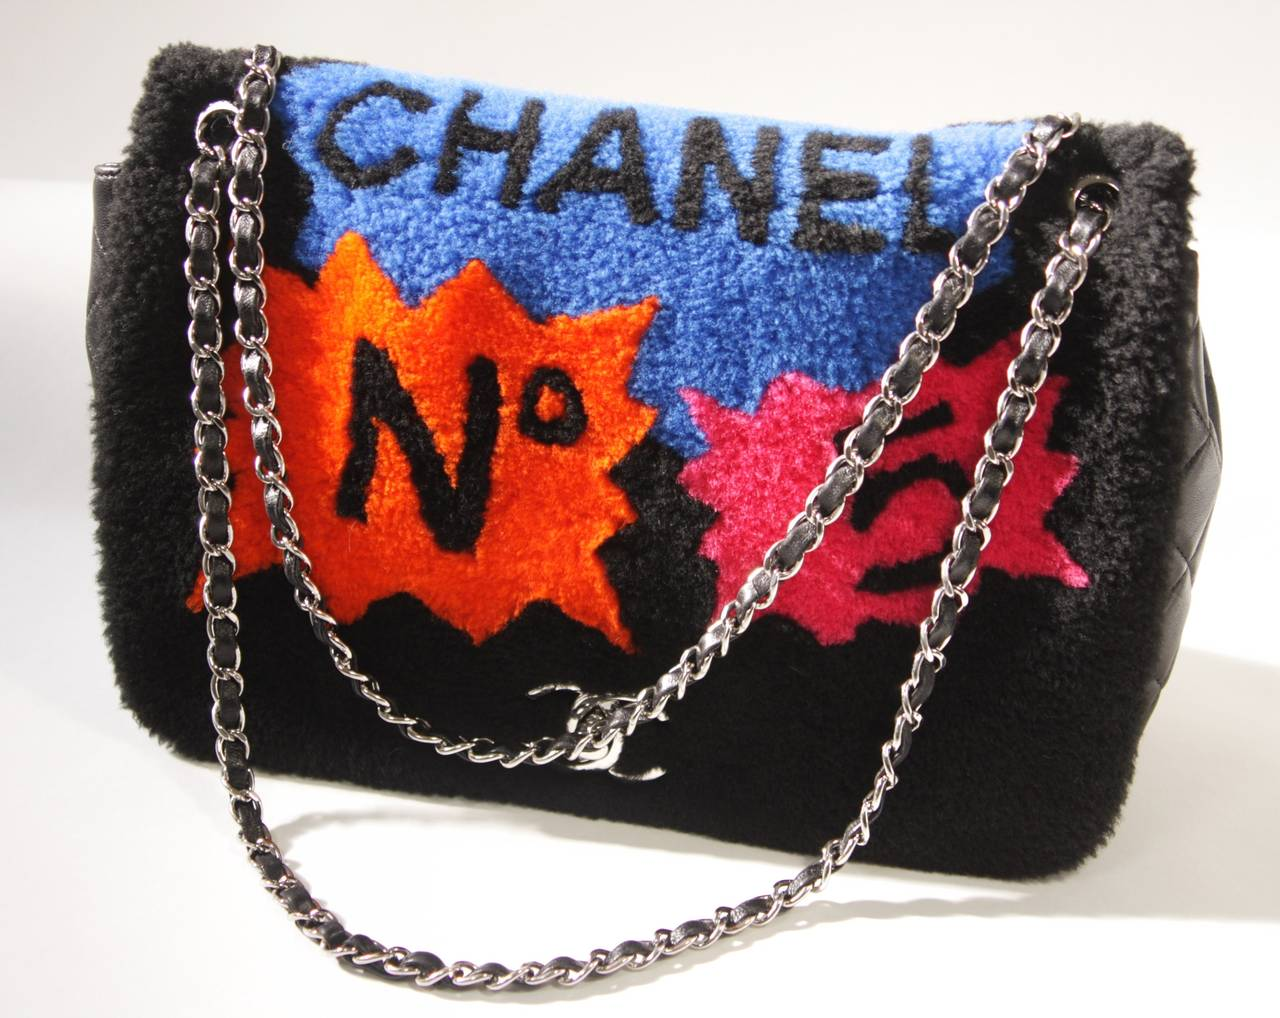 Chanel Shearling Art Pop Large Purse with Quilted Lambskin Fall 2014 2